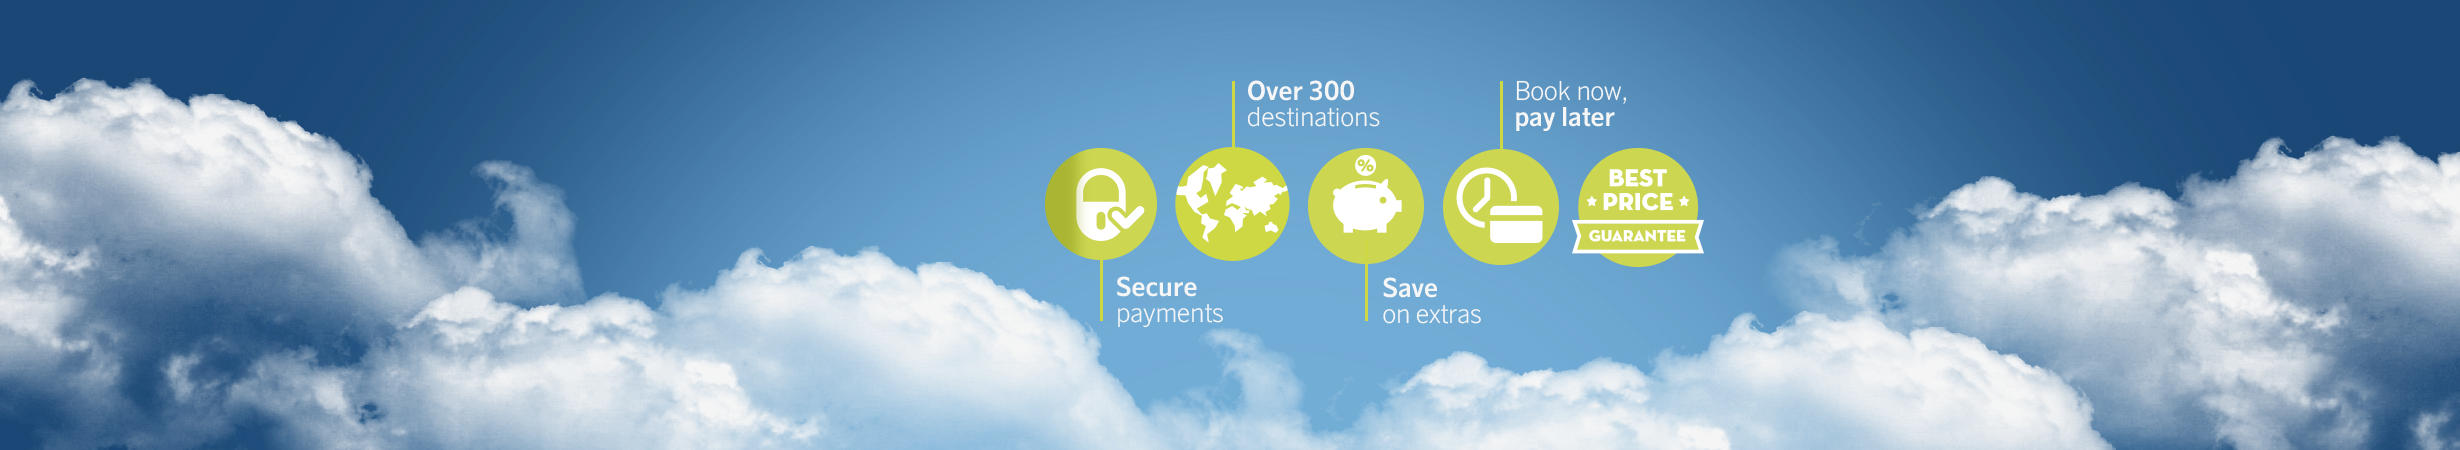 why book on airbaltic.com